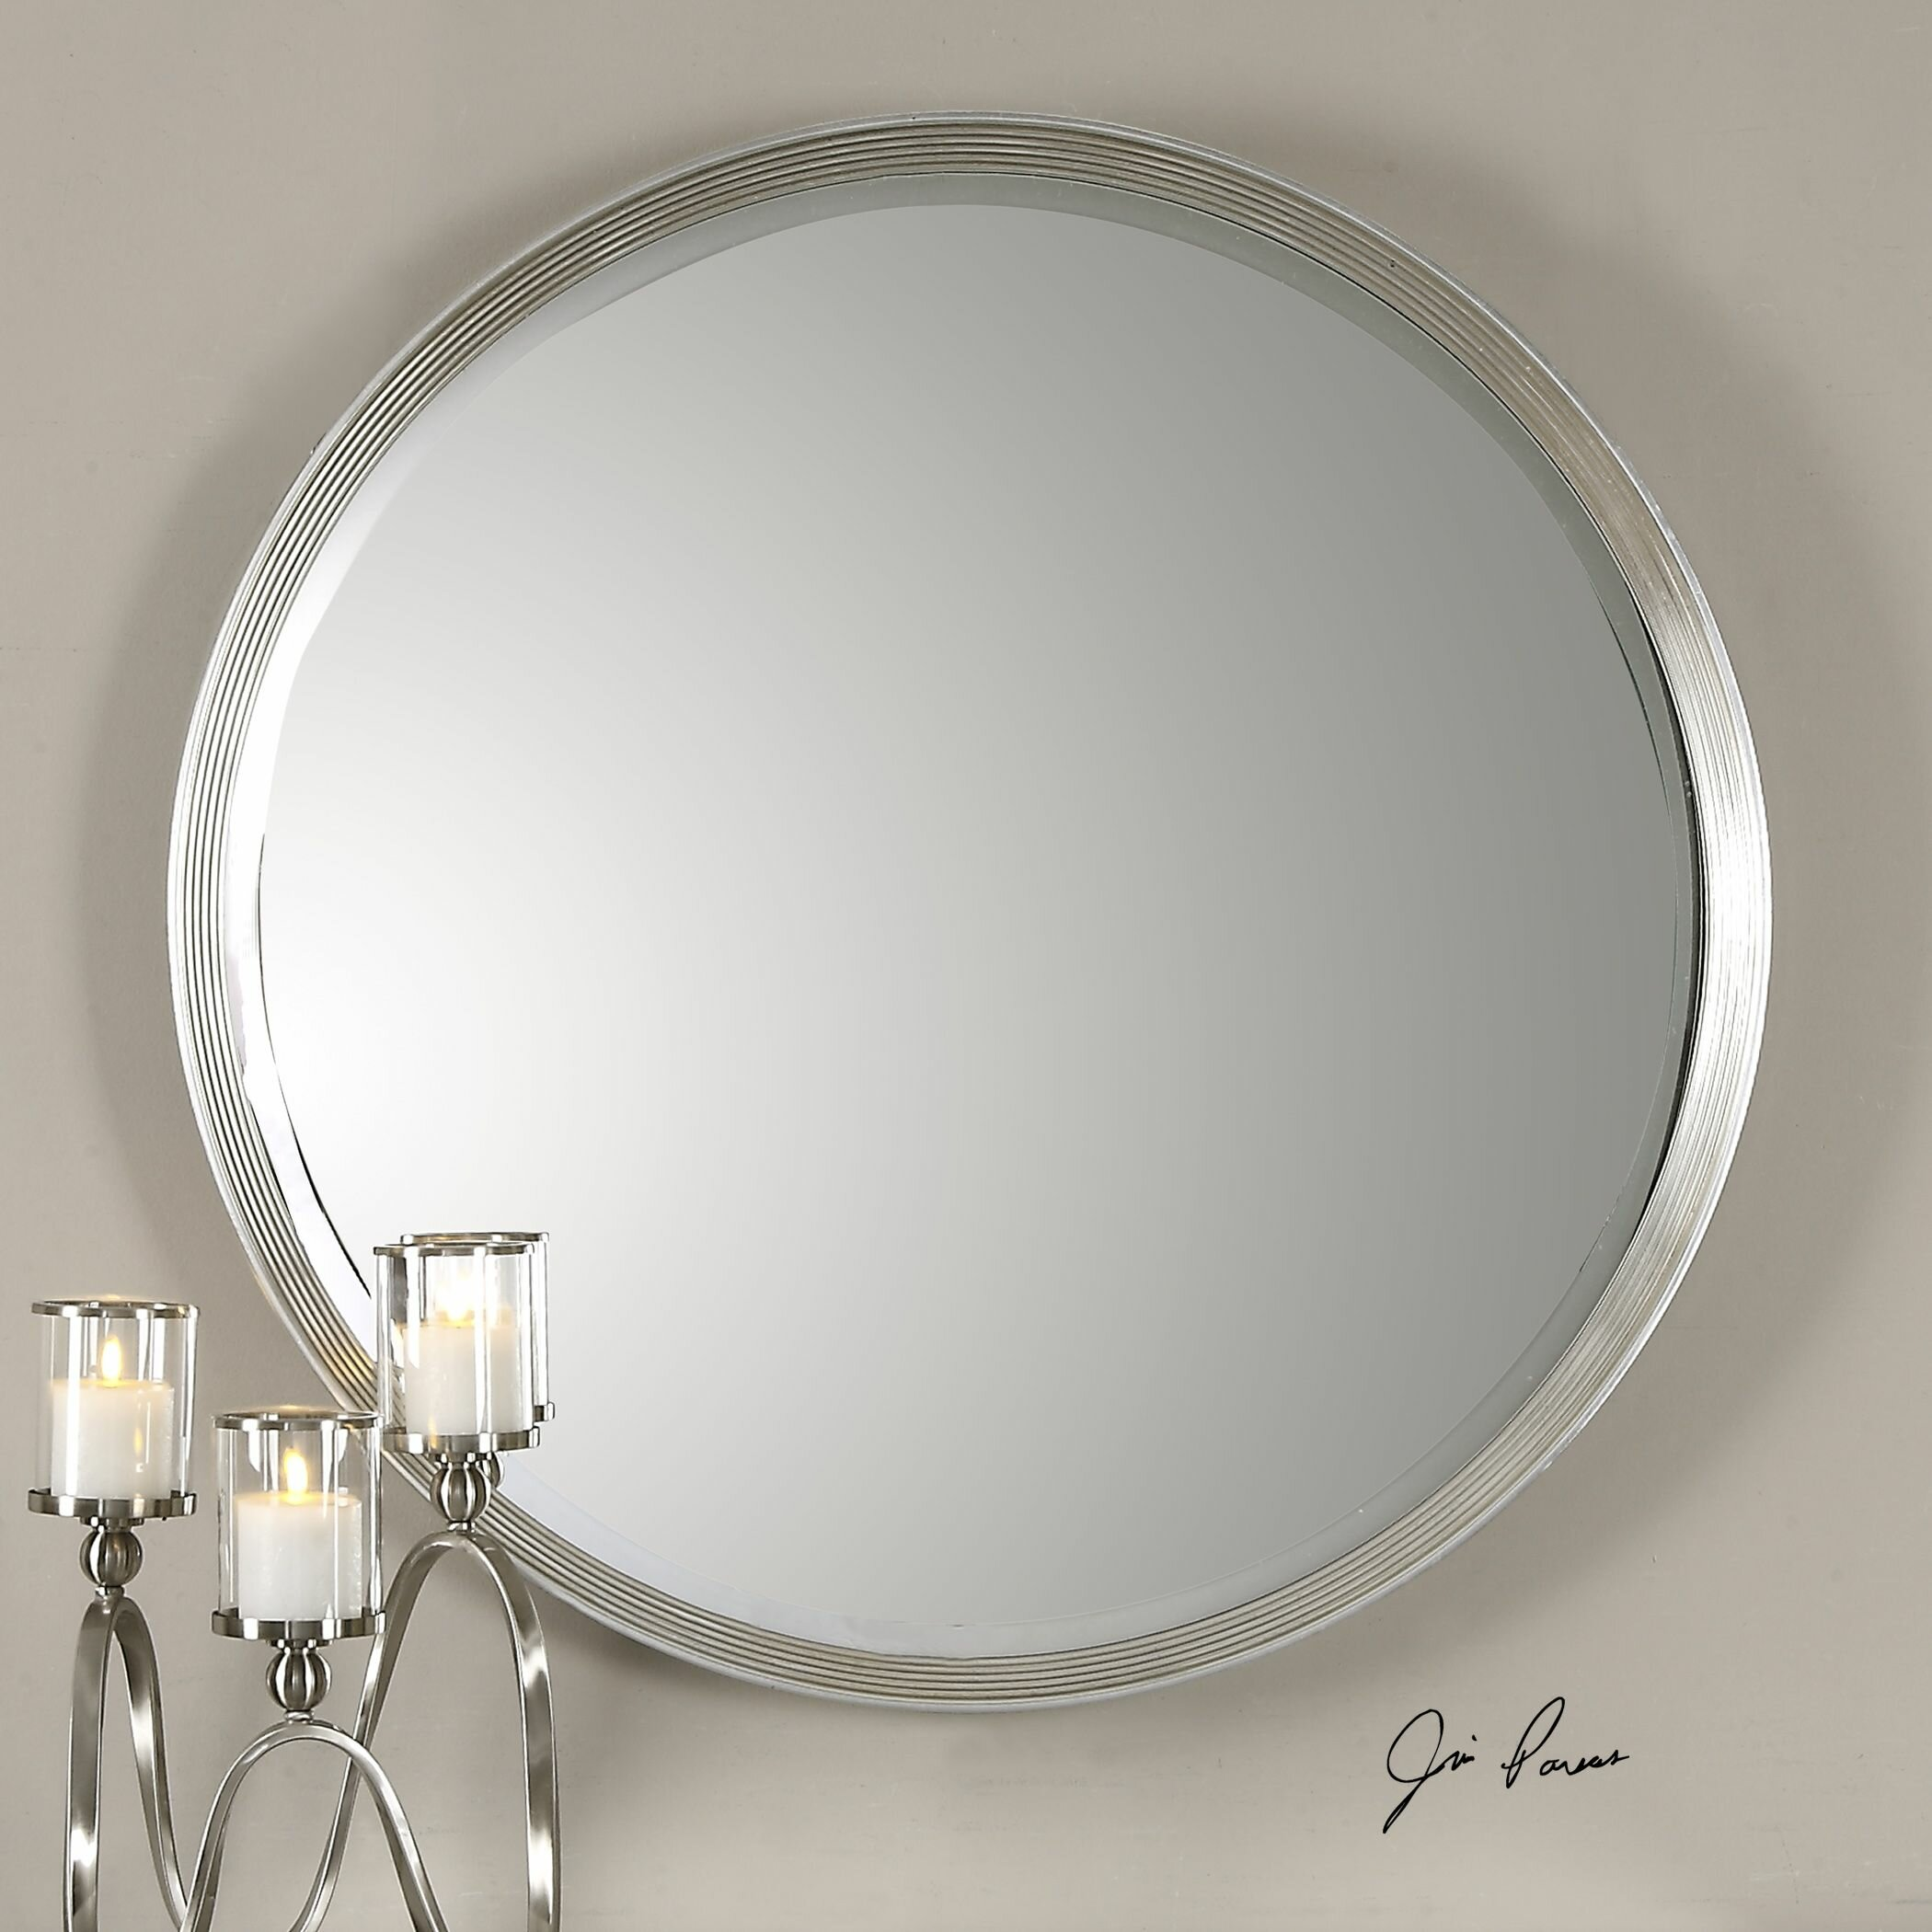 serenza round silver wall mirror wayfair. Black Bedroom Furniture Sets. Home Design Ideas